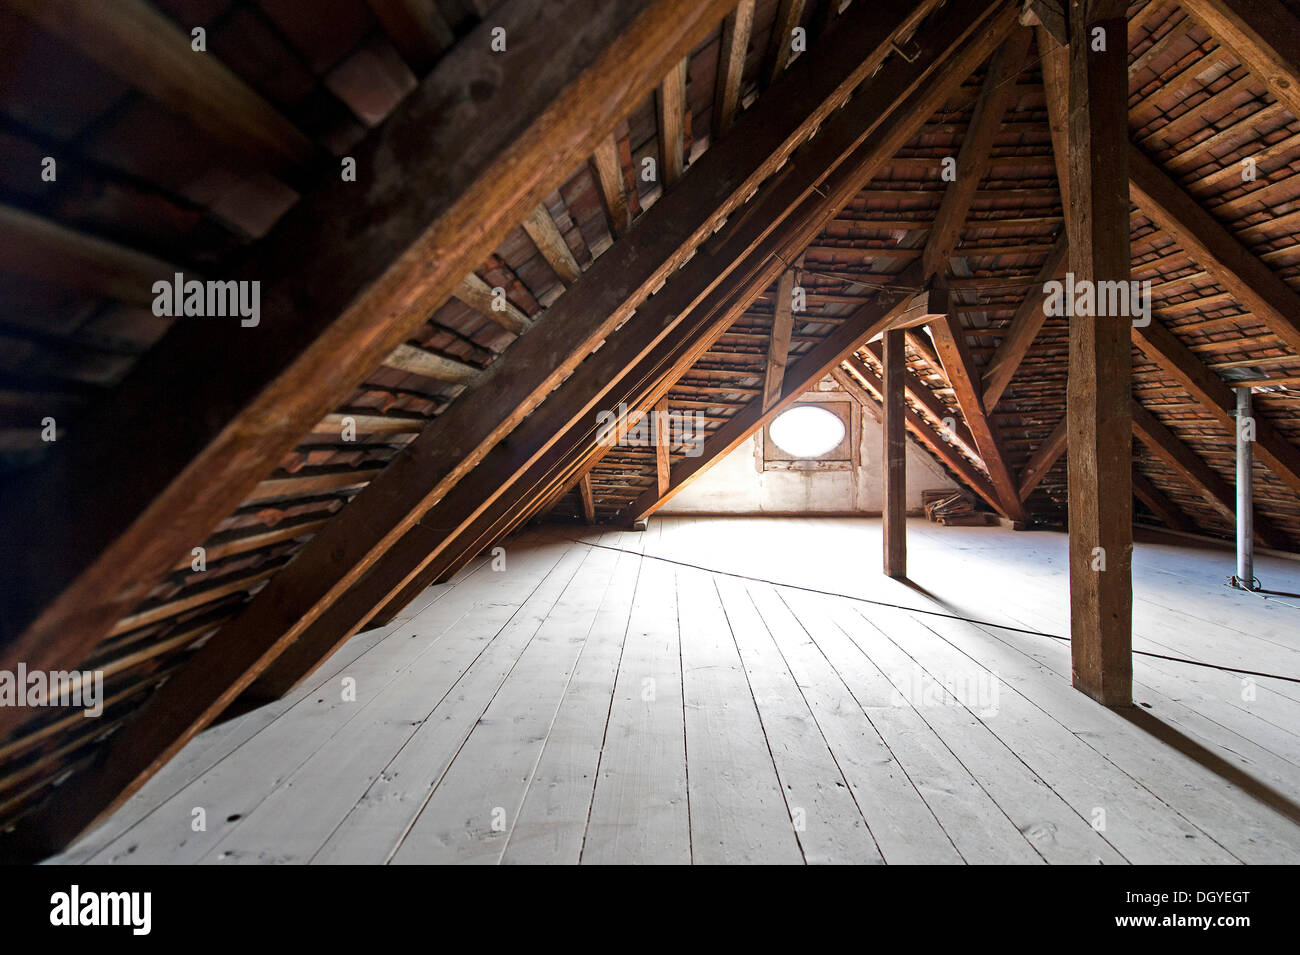 Wooden beams attic roof of an old building